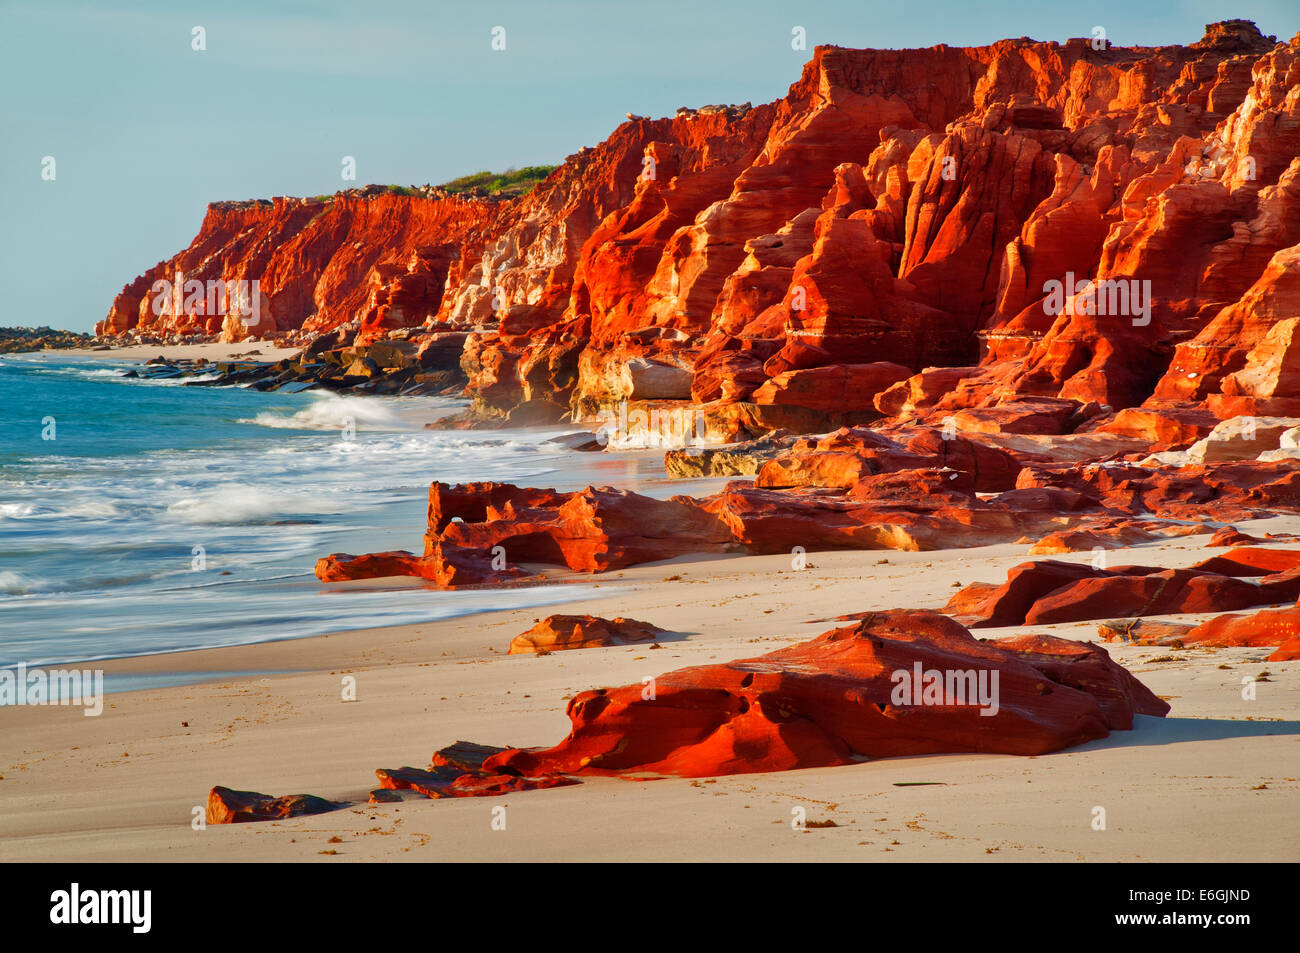 Les falaises rouges de Cape Leveque. Photo Stock